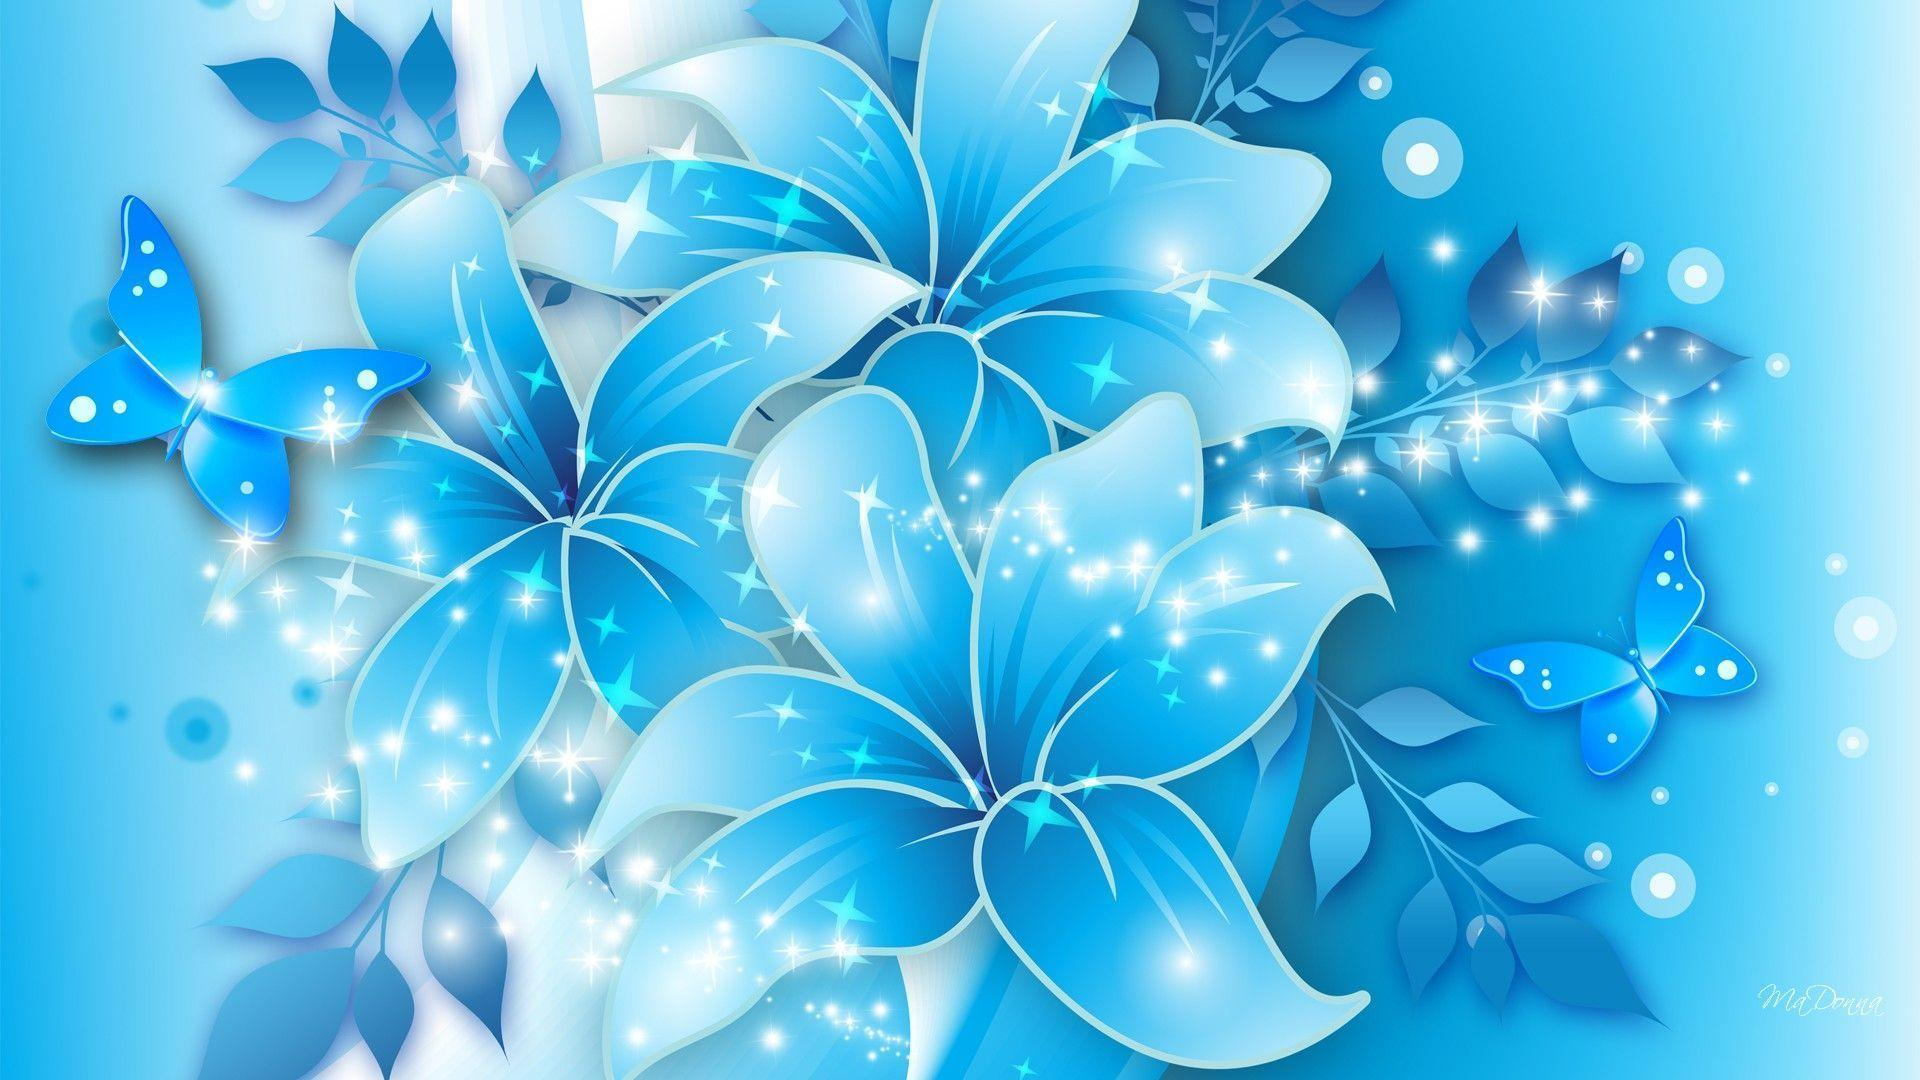 Blue Flowers Backgrounds 1920x1080